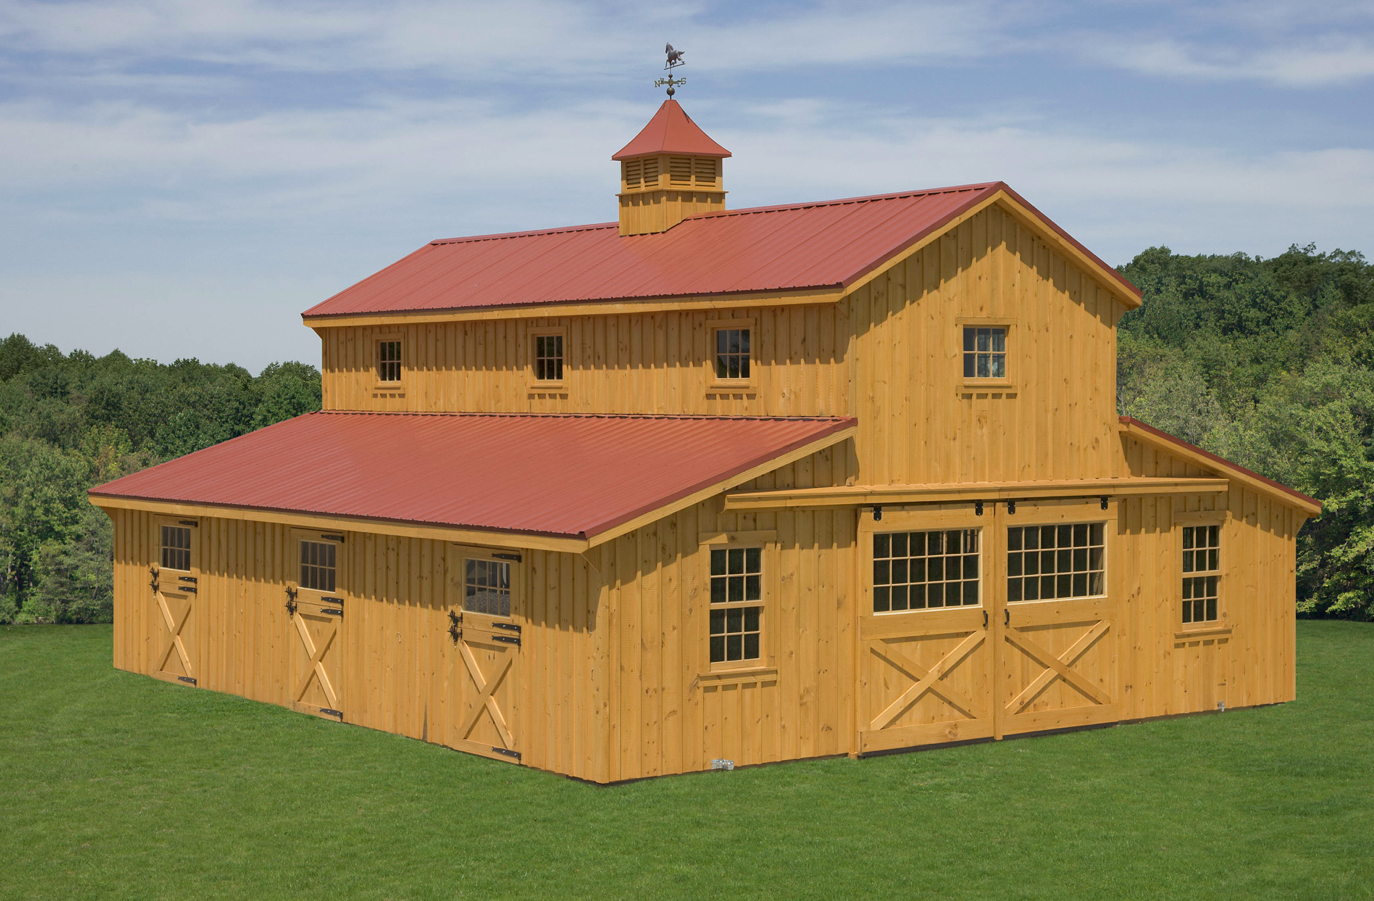 Barn designs north country sheds monitor horse barns for Metal barn designs